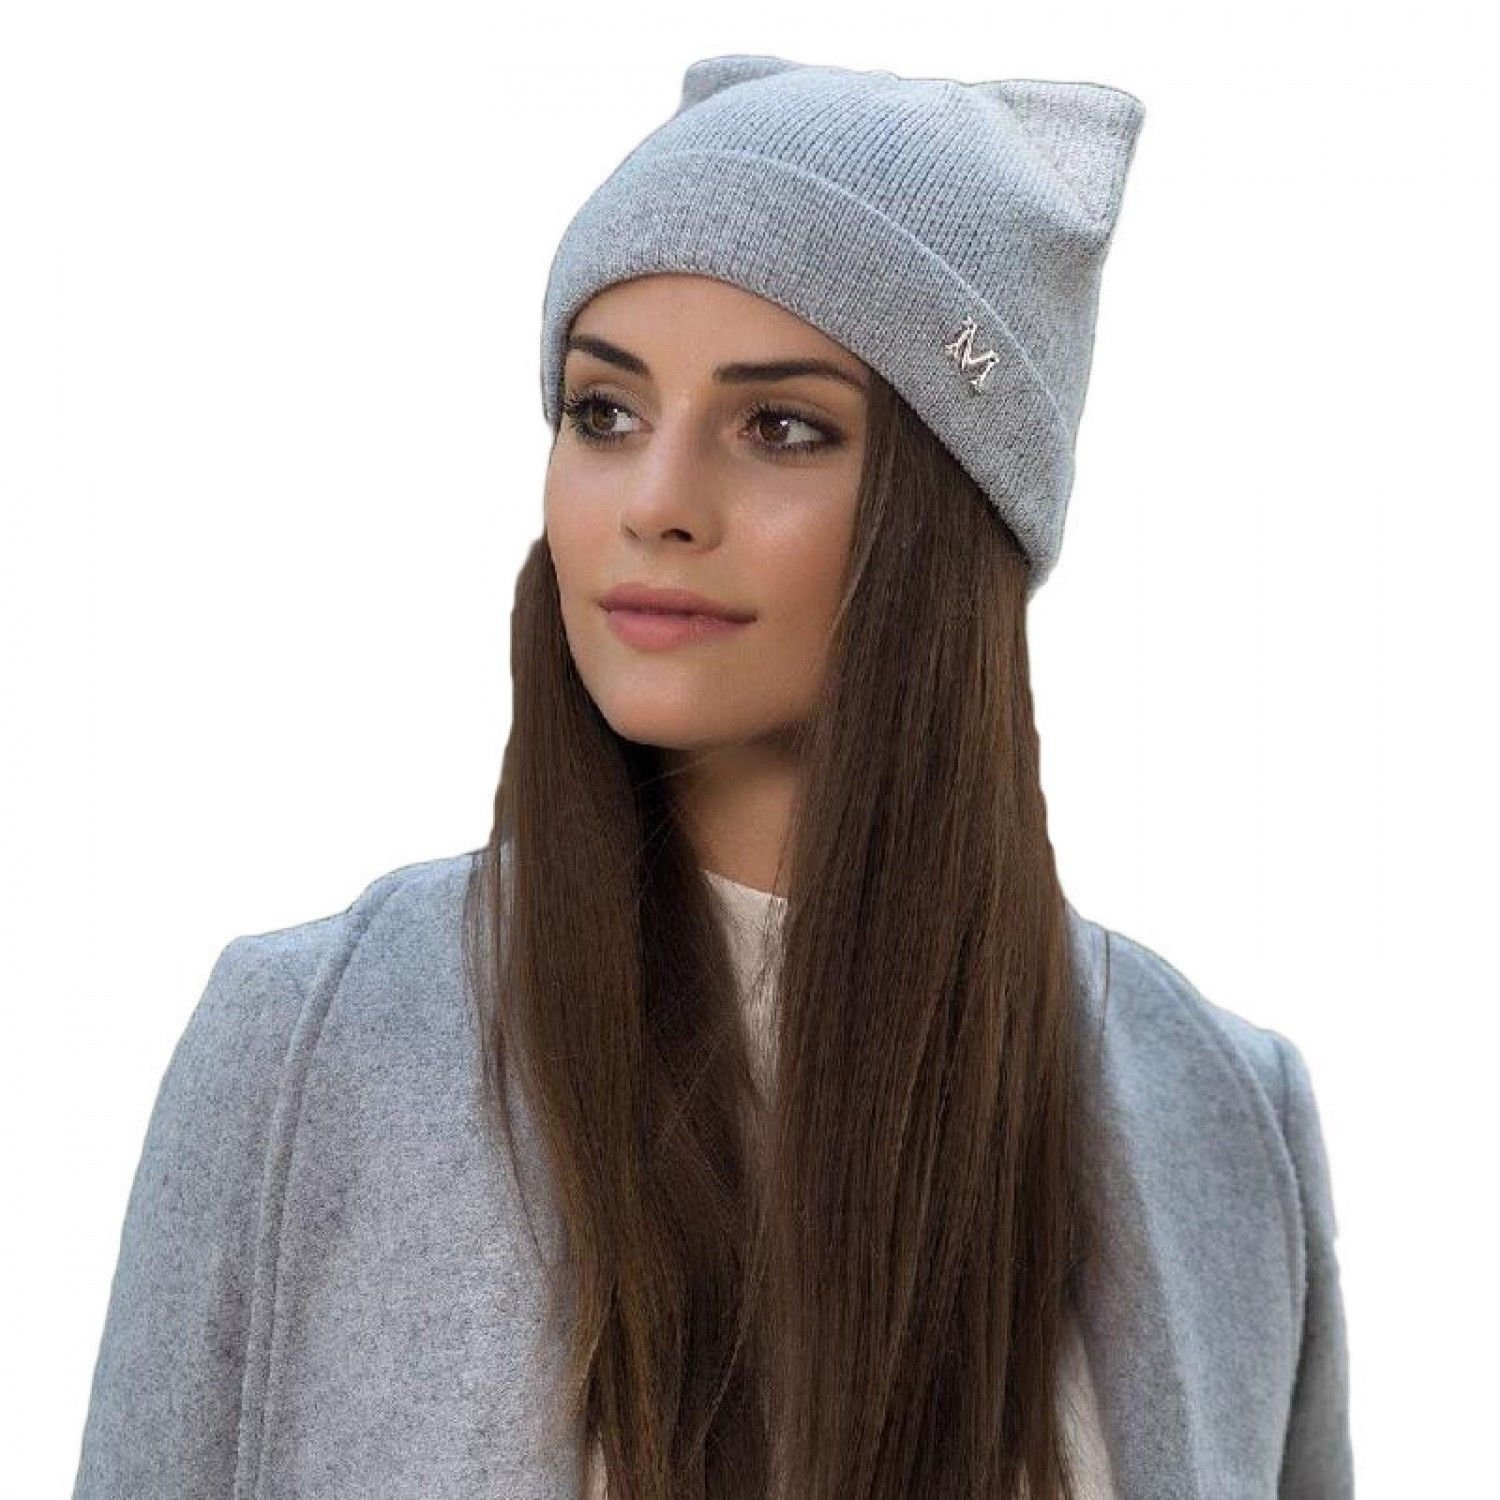 a3a880293 Winter Women Hats Cat Ears And Letter Design Knitted Wool With Cute Beanies  Caps